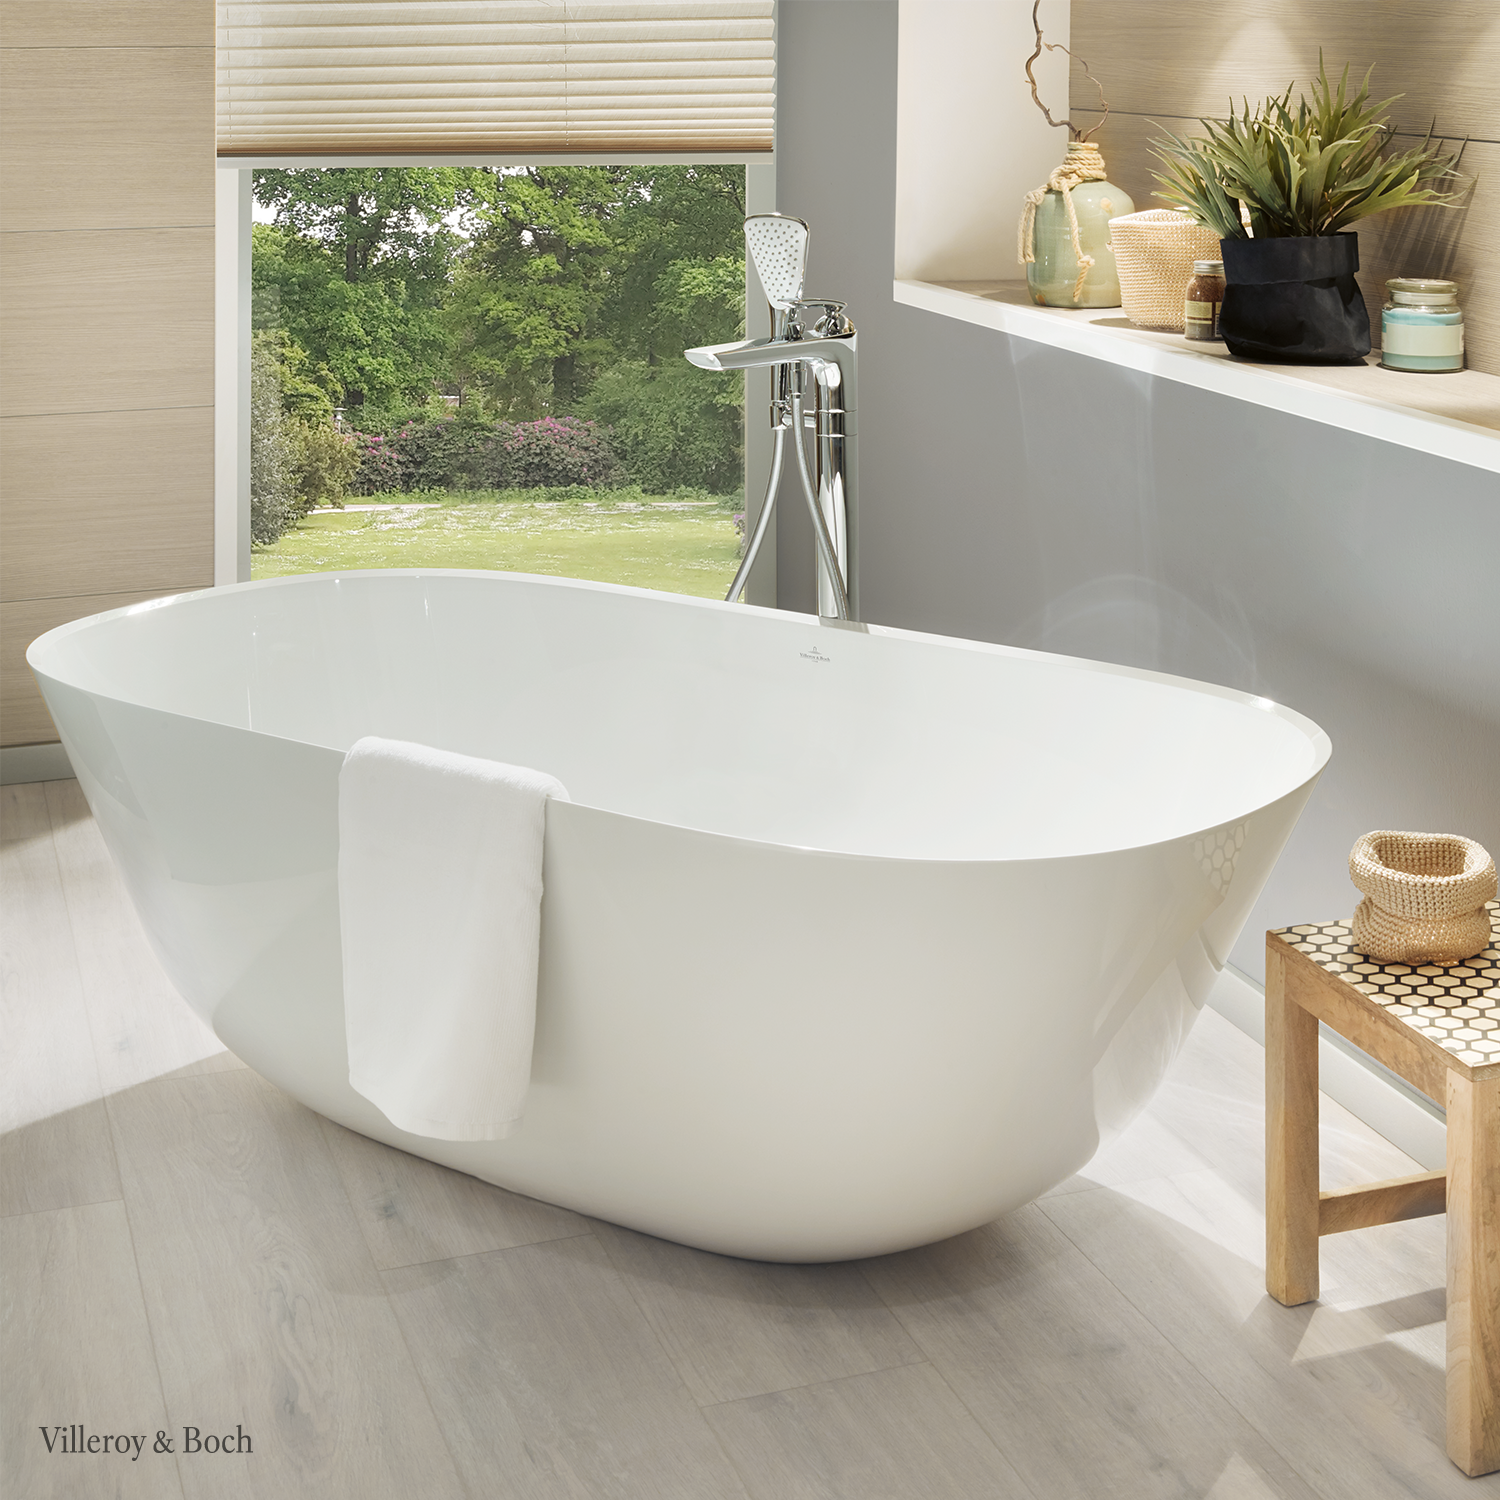 If You Want Your Bathtub To Be The Heart Of Your Bathroom A Freestanding Tub Might Be The Right Design Piece For You Locate It Wherever You Want And E En 2020